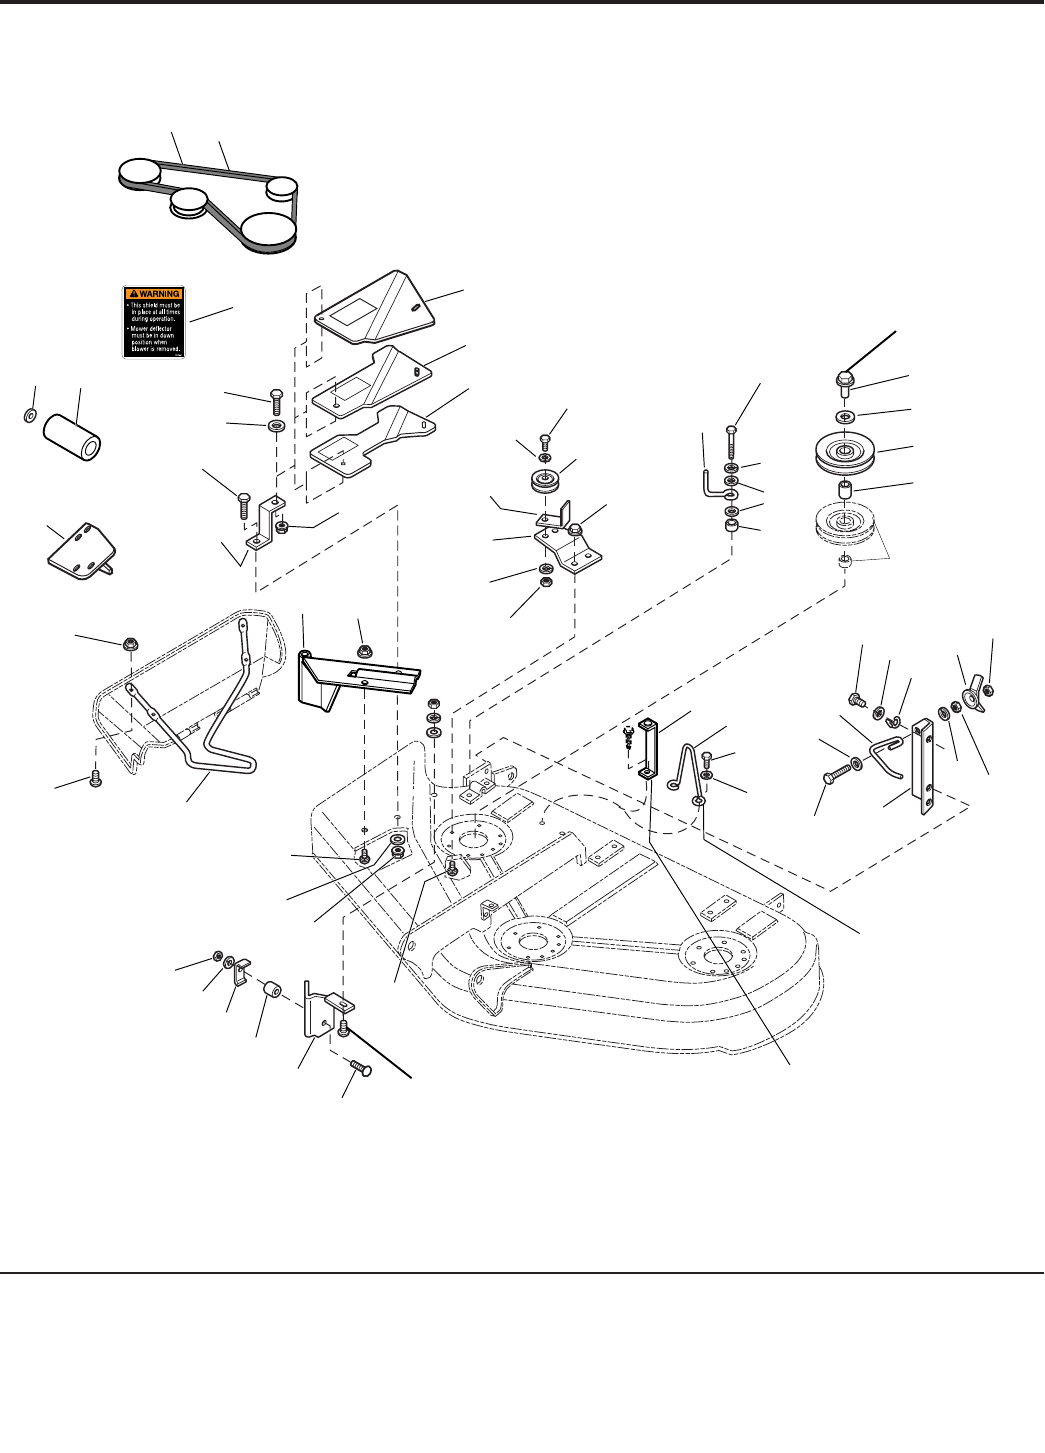 Page 2 of Simplicity Lawn Mower 1694306 User Guide